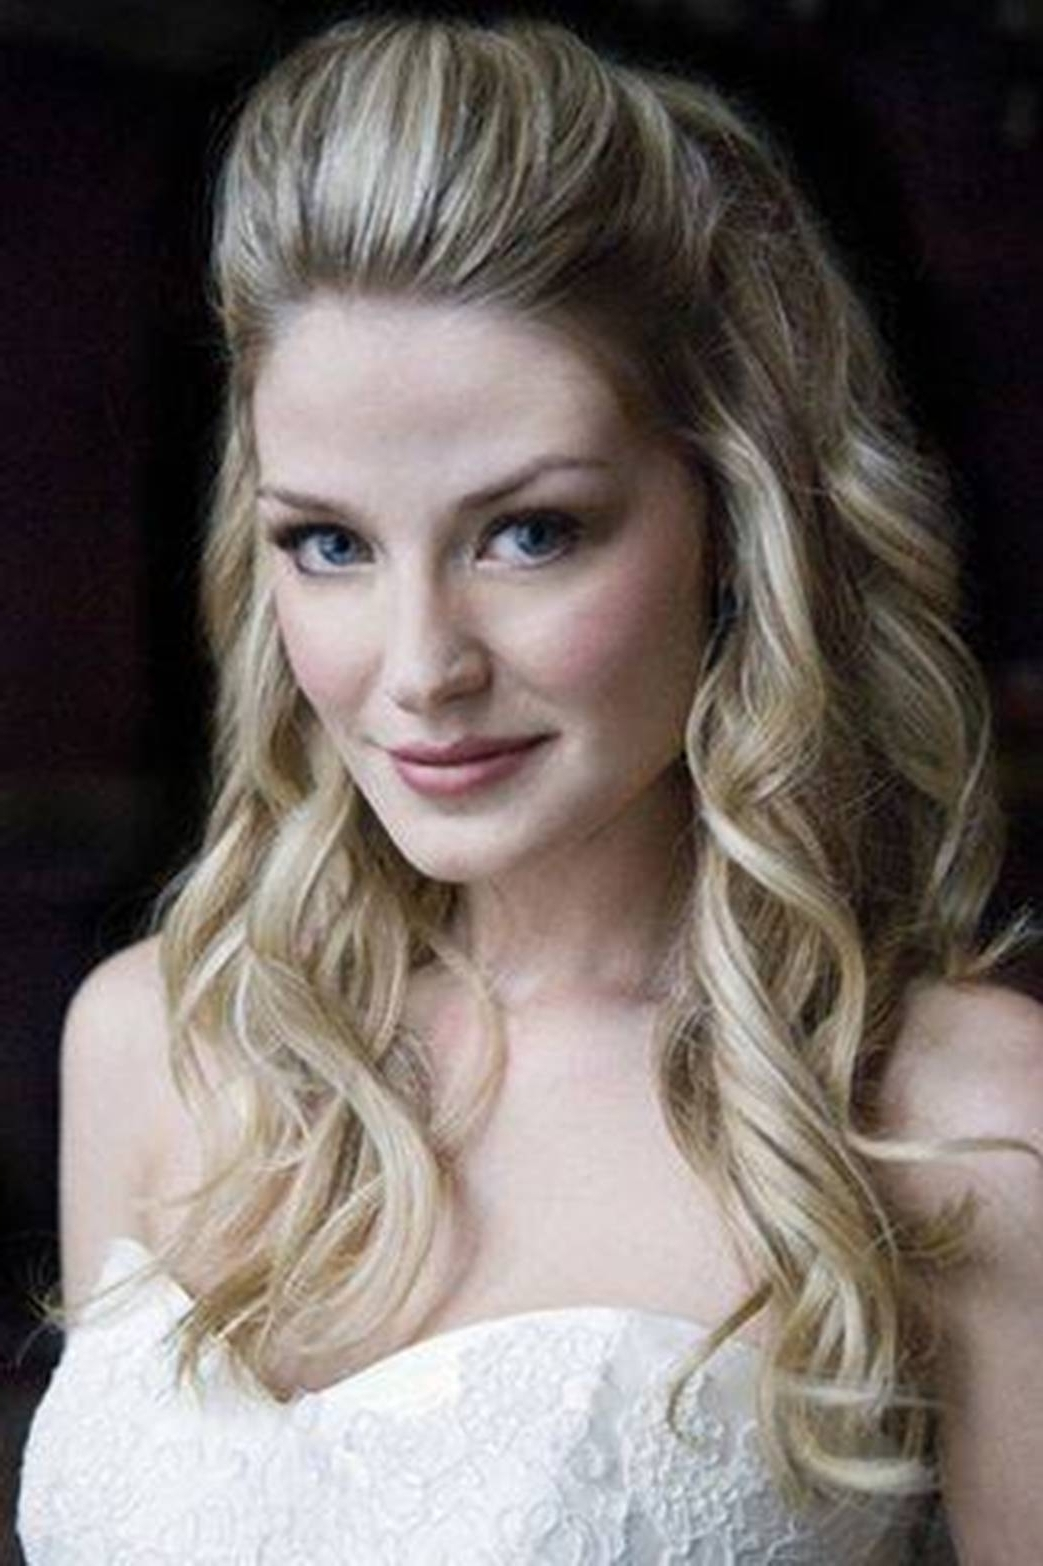 Fashionable Wedding Hairstyles For Long Thin Hair With Cute Hairstyles For Medium Thin Hair – Hairstyle For Women & Man (View 5 of 15)